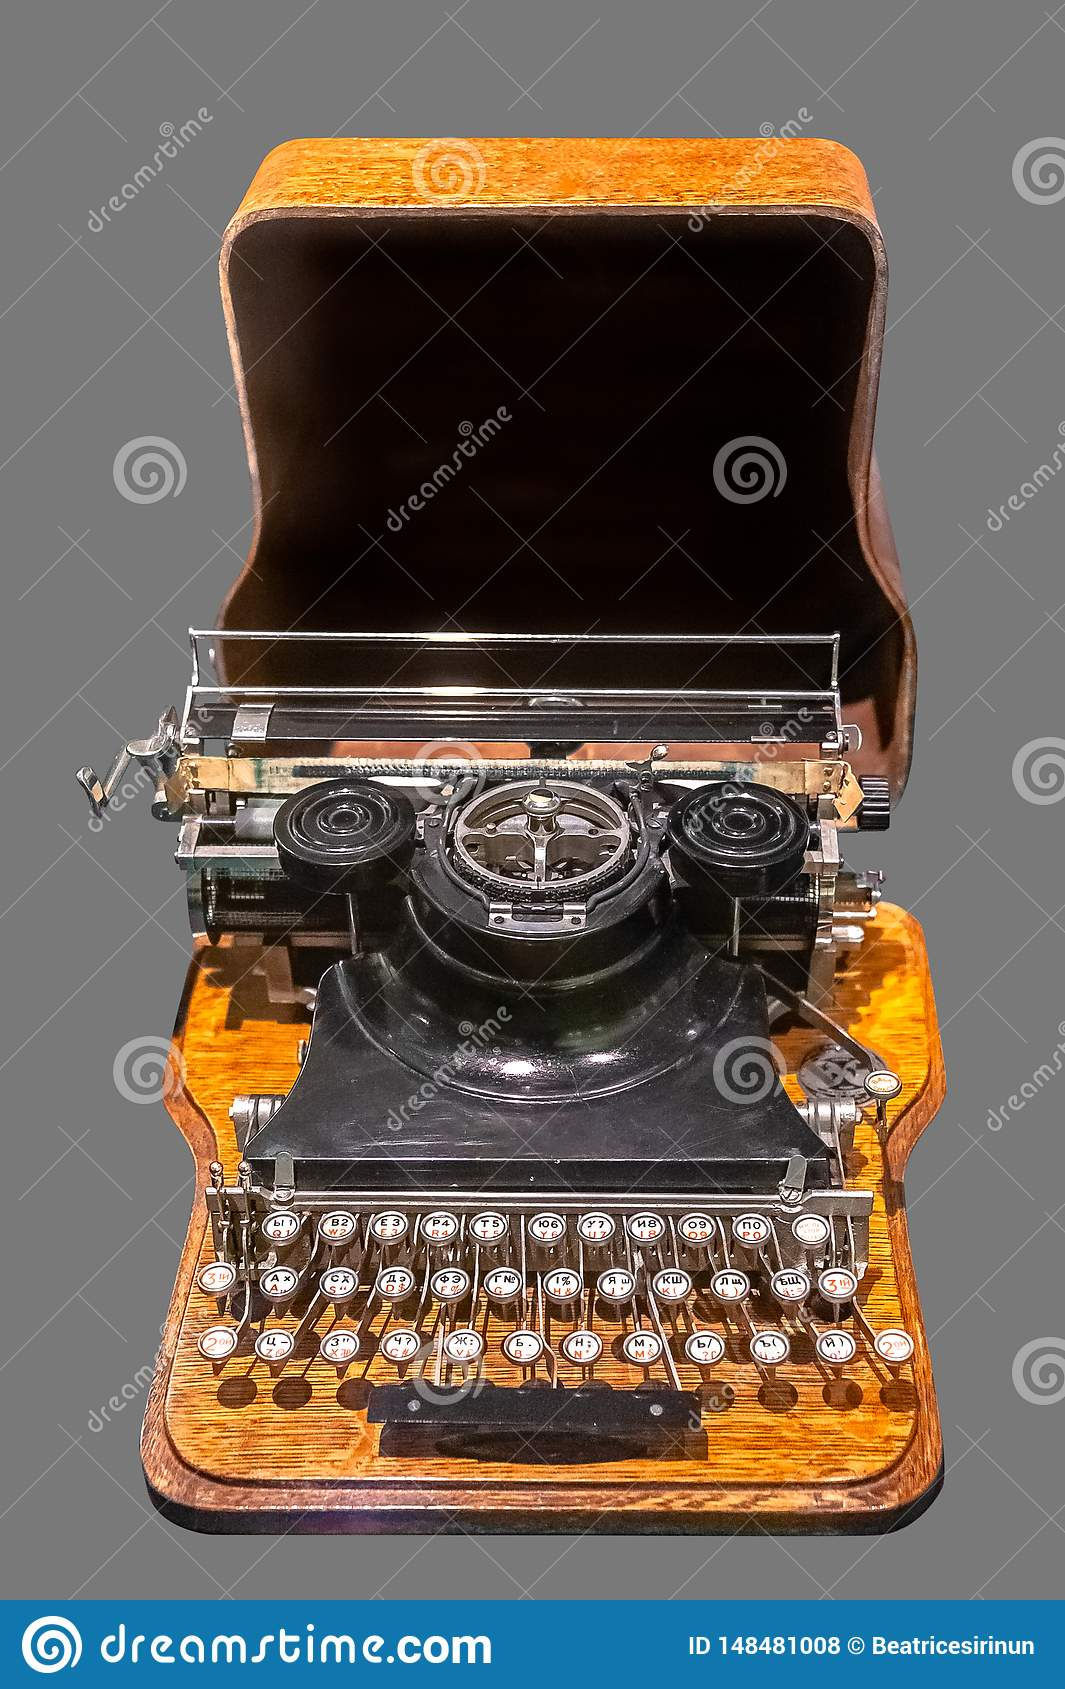 3ae4a146a48 Old vintage Russian typewriter on isolated gray background with clipping  path.